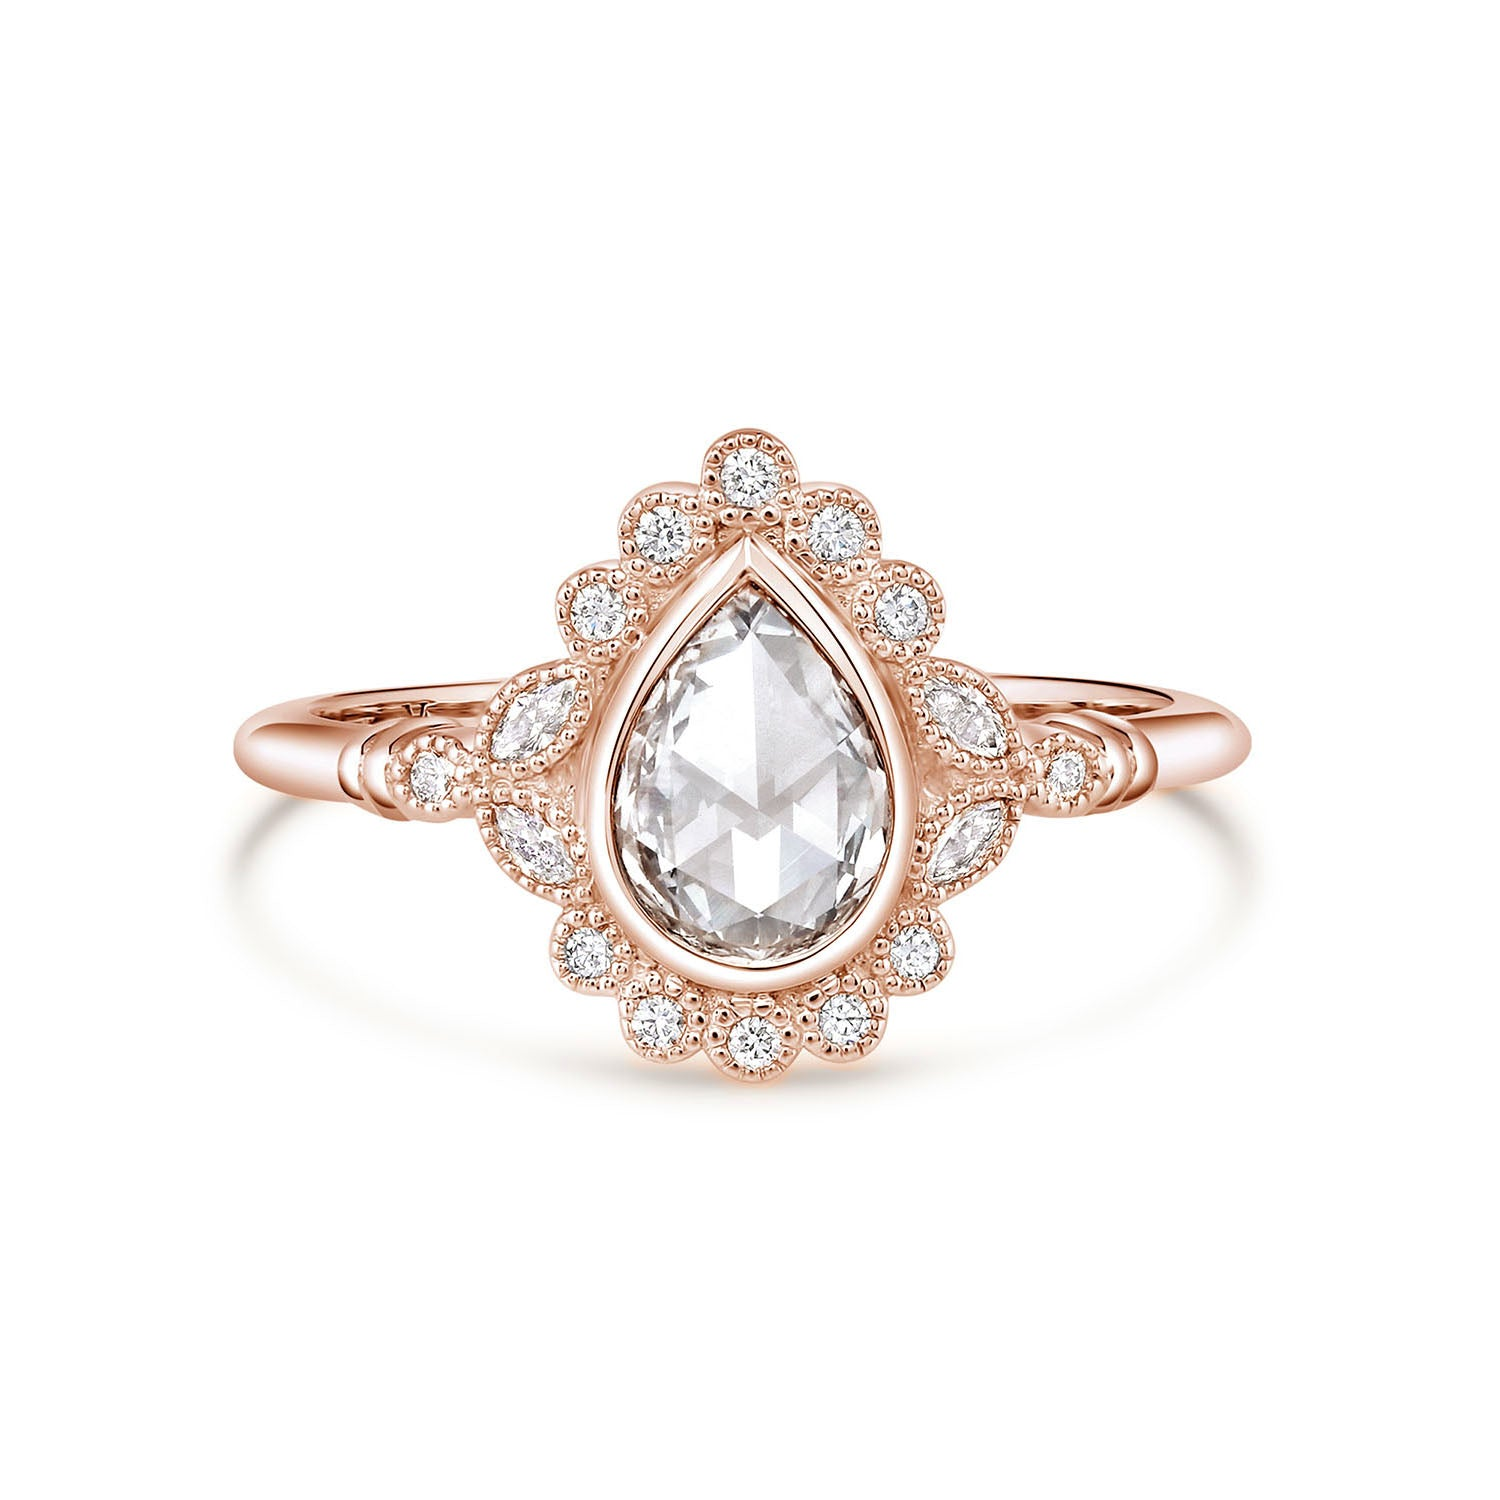 Everly | Pear Rose Cut Moissanite Milgrain Bezel Engagement Ring | Rose Gold